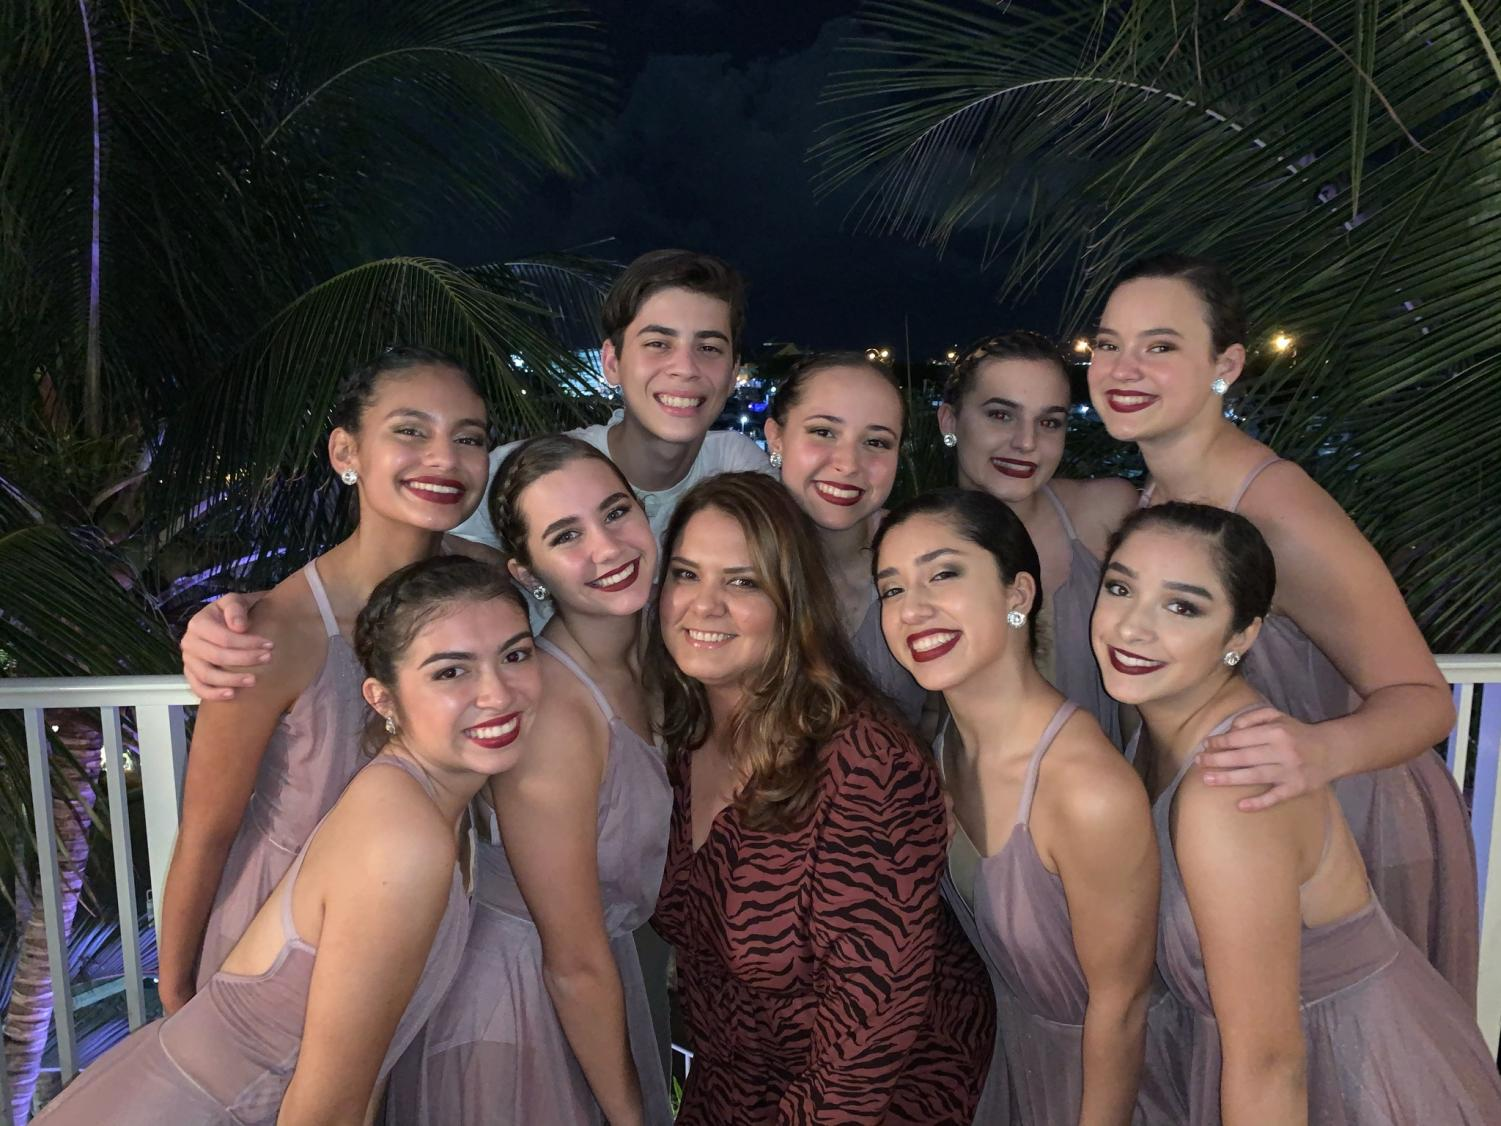 Part of the Gablettes team with Bertha Lowell while performing at the Kelsie Karpiak memorial event that took place on Sep. 7, 2019.